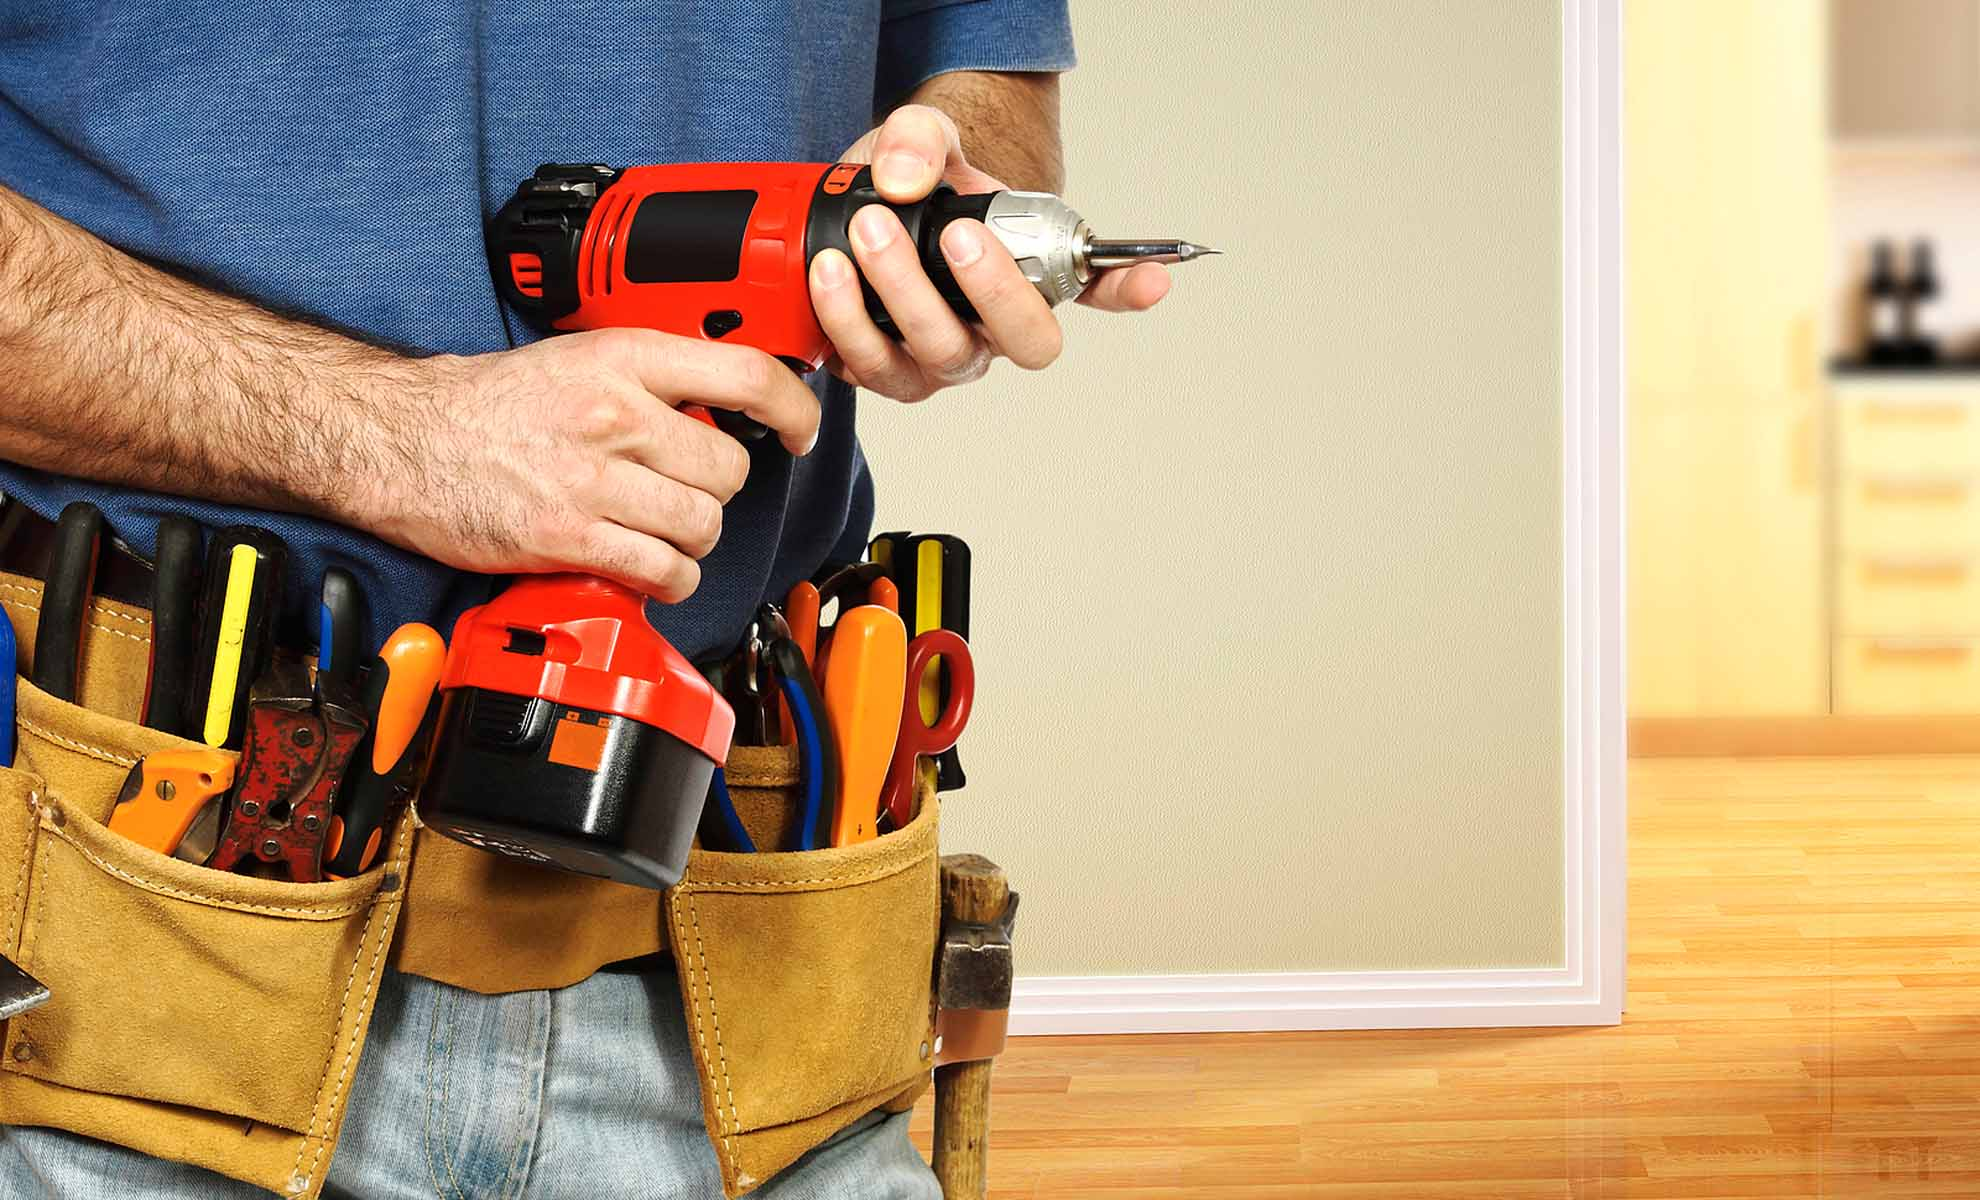 Significant Advice On Home Repairs